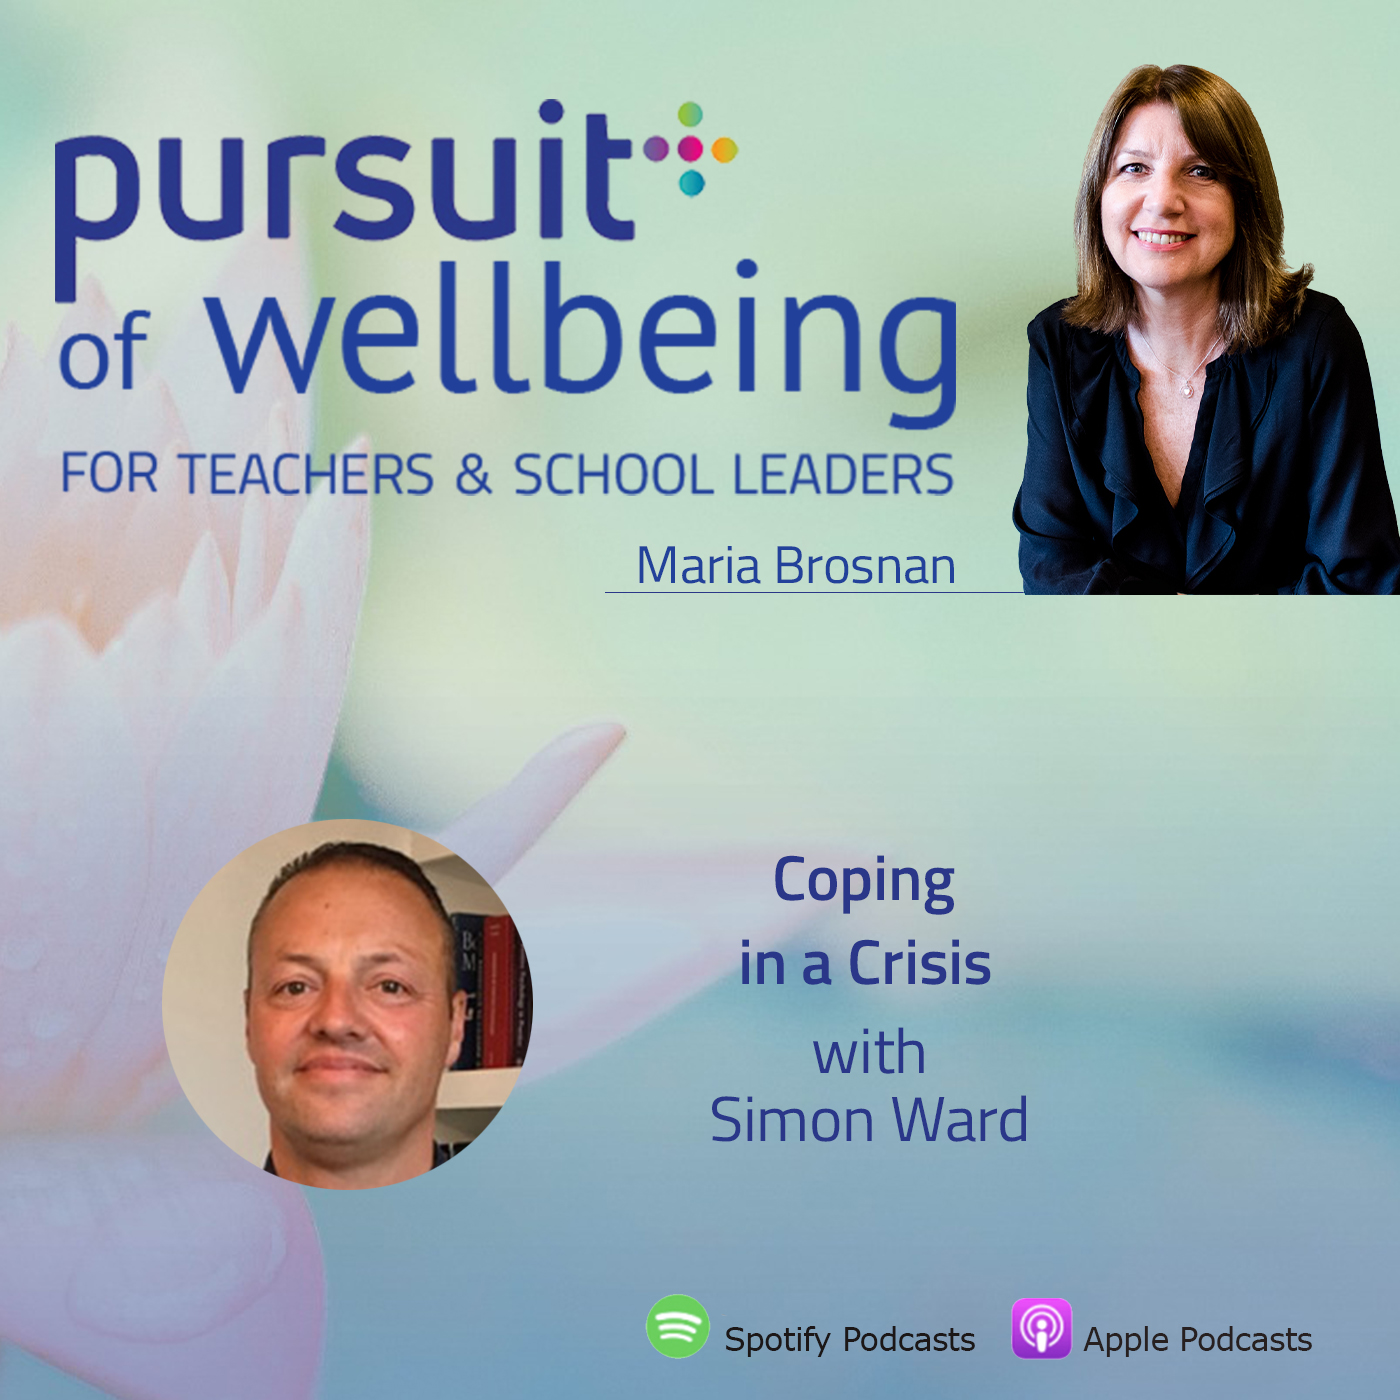 Coping in a Crisis with Simon Ward